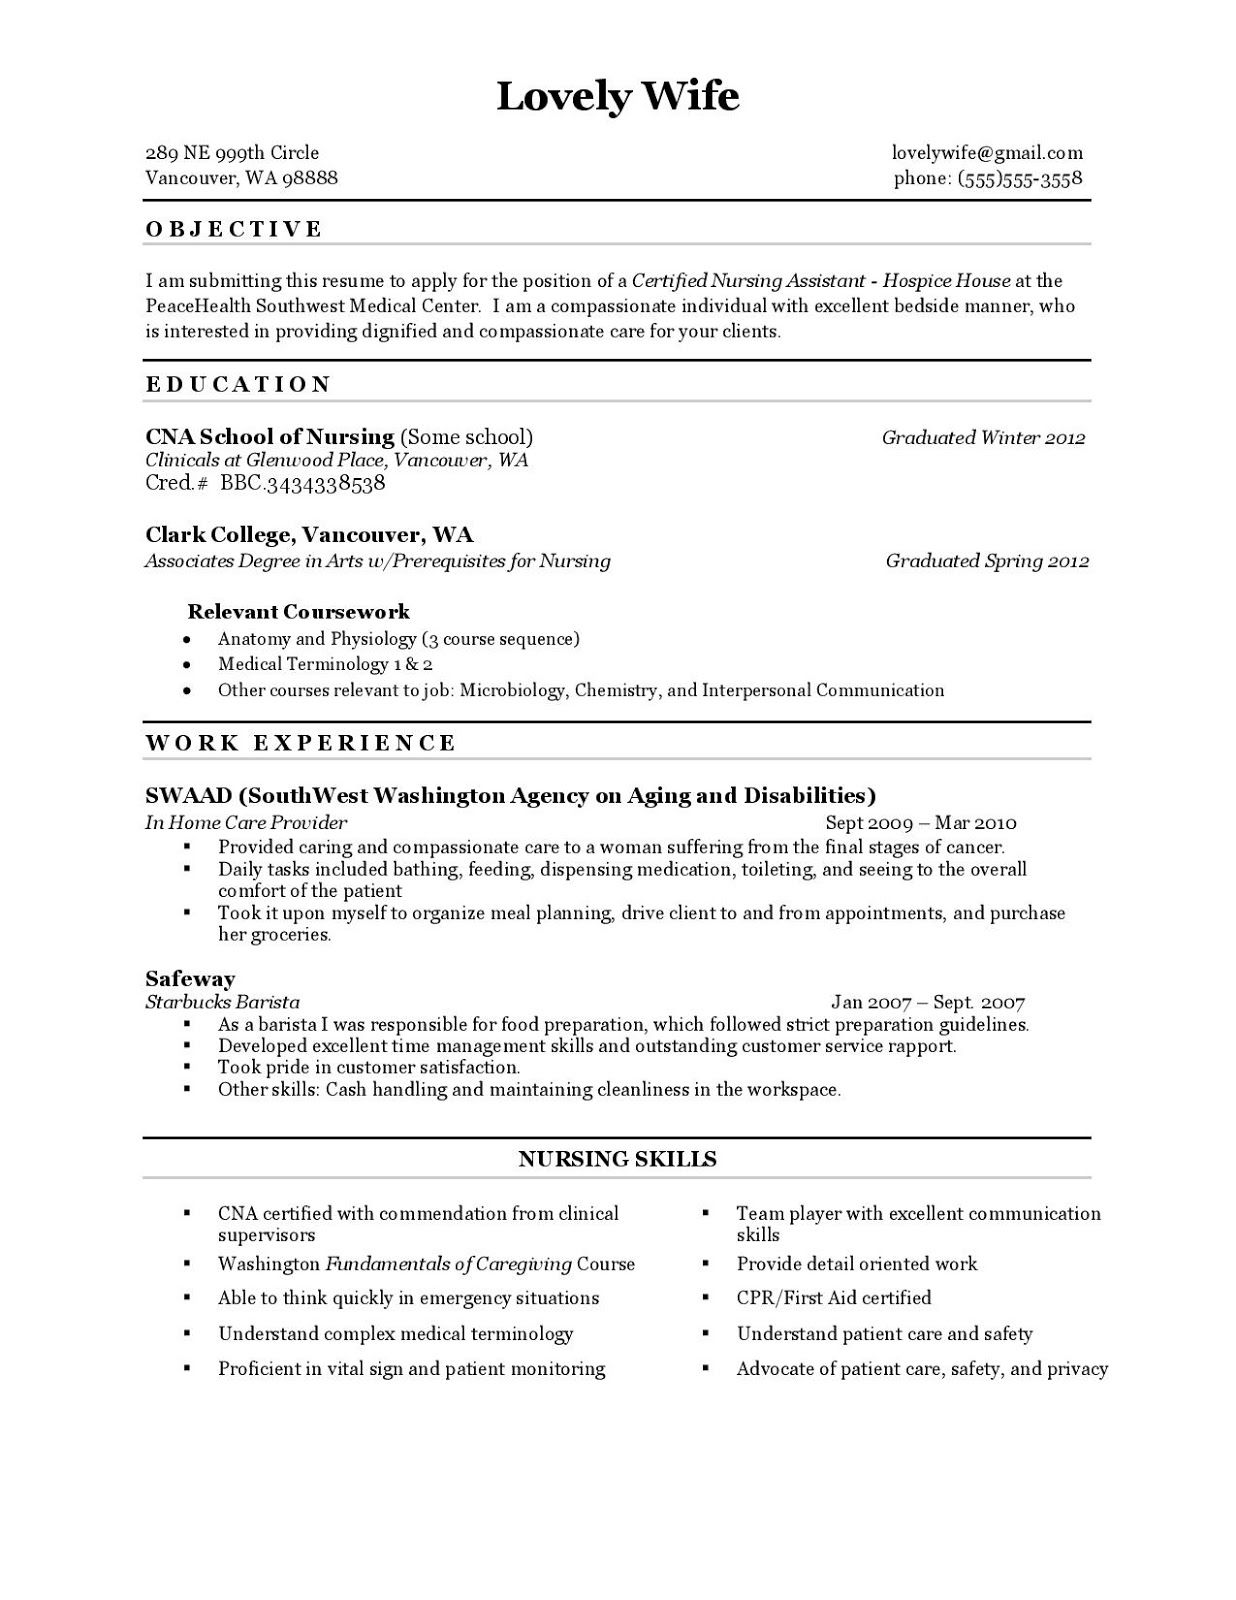 caregiver resume, resume sample, summary for hospitality good personal sample cv finance and administration officer